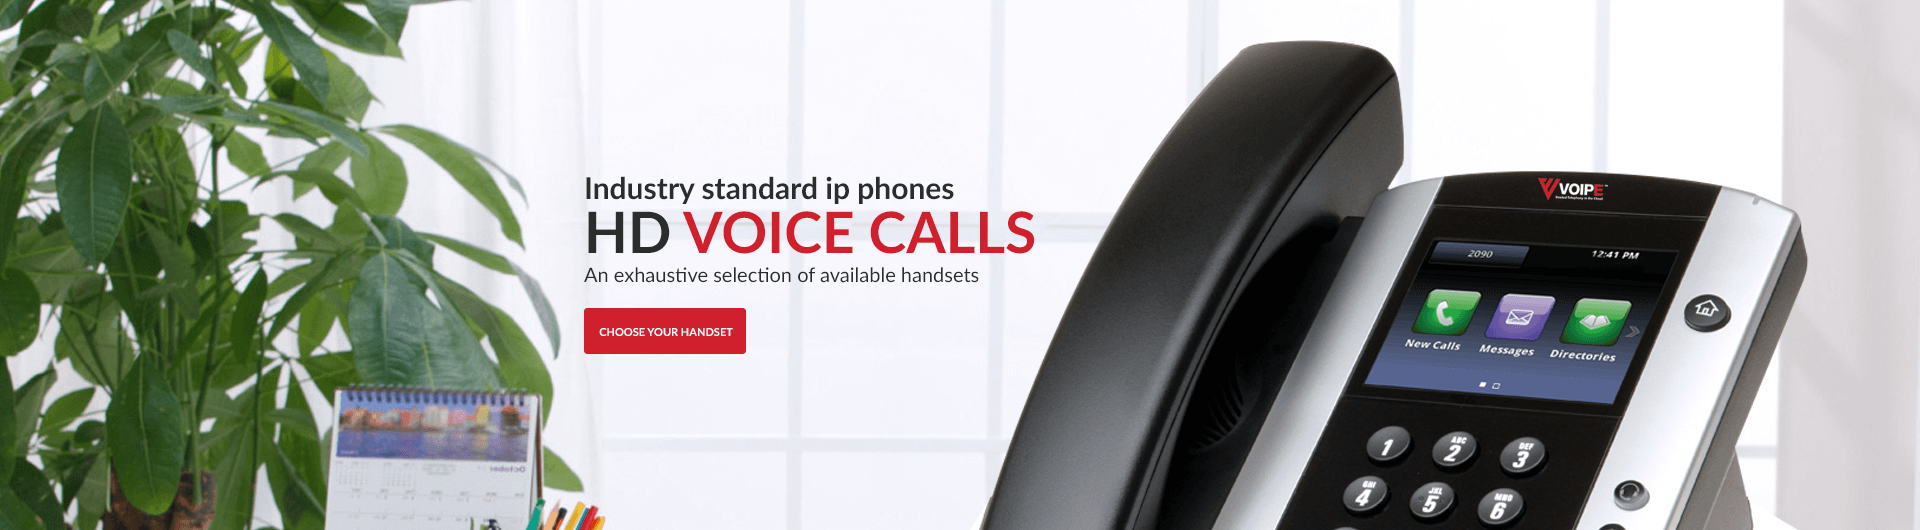 Check out our exhaustive range of IP phones. Our cloud phones are available at no upfront costs with our hosted VOIP plans, and you could start enjoying business VOIP straight away with a brand new VOIP phone from VOIPE.